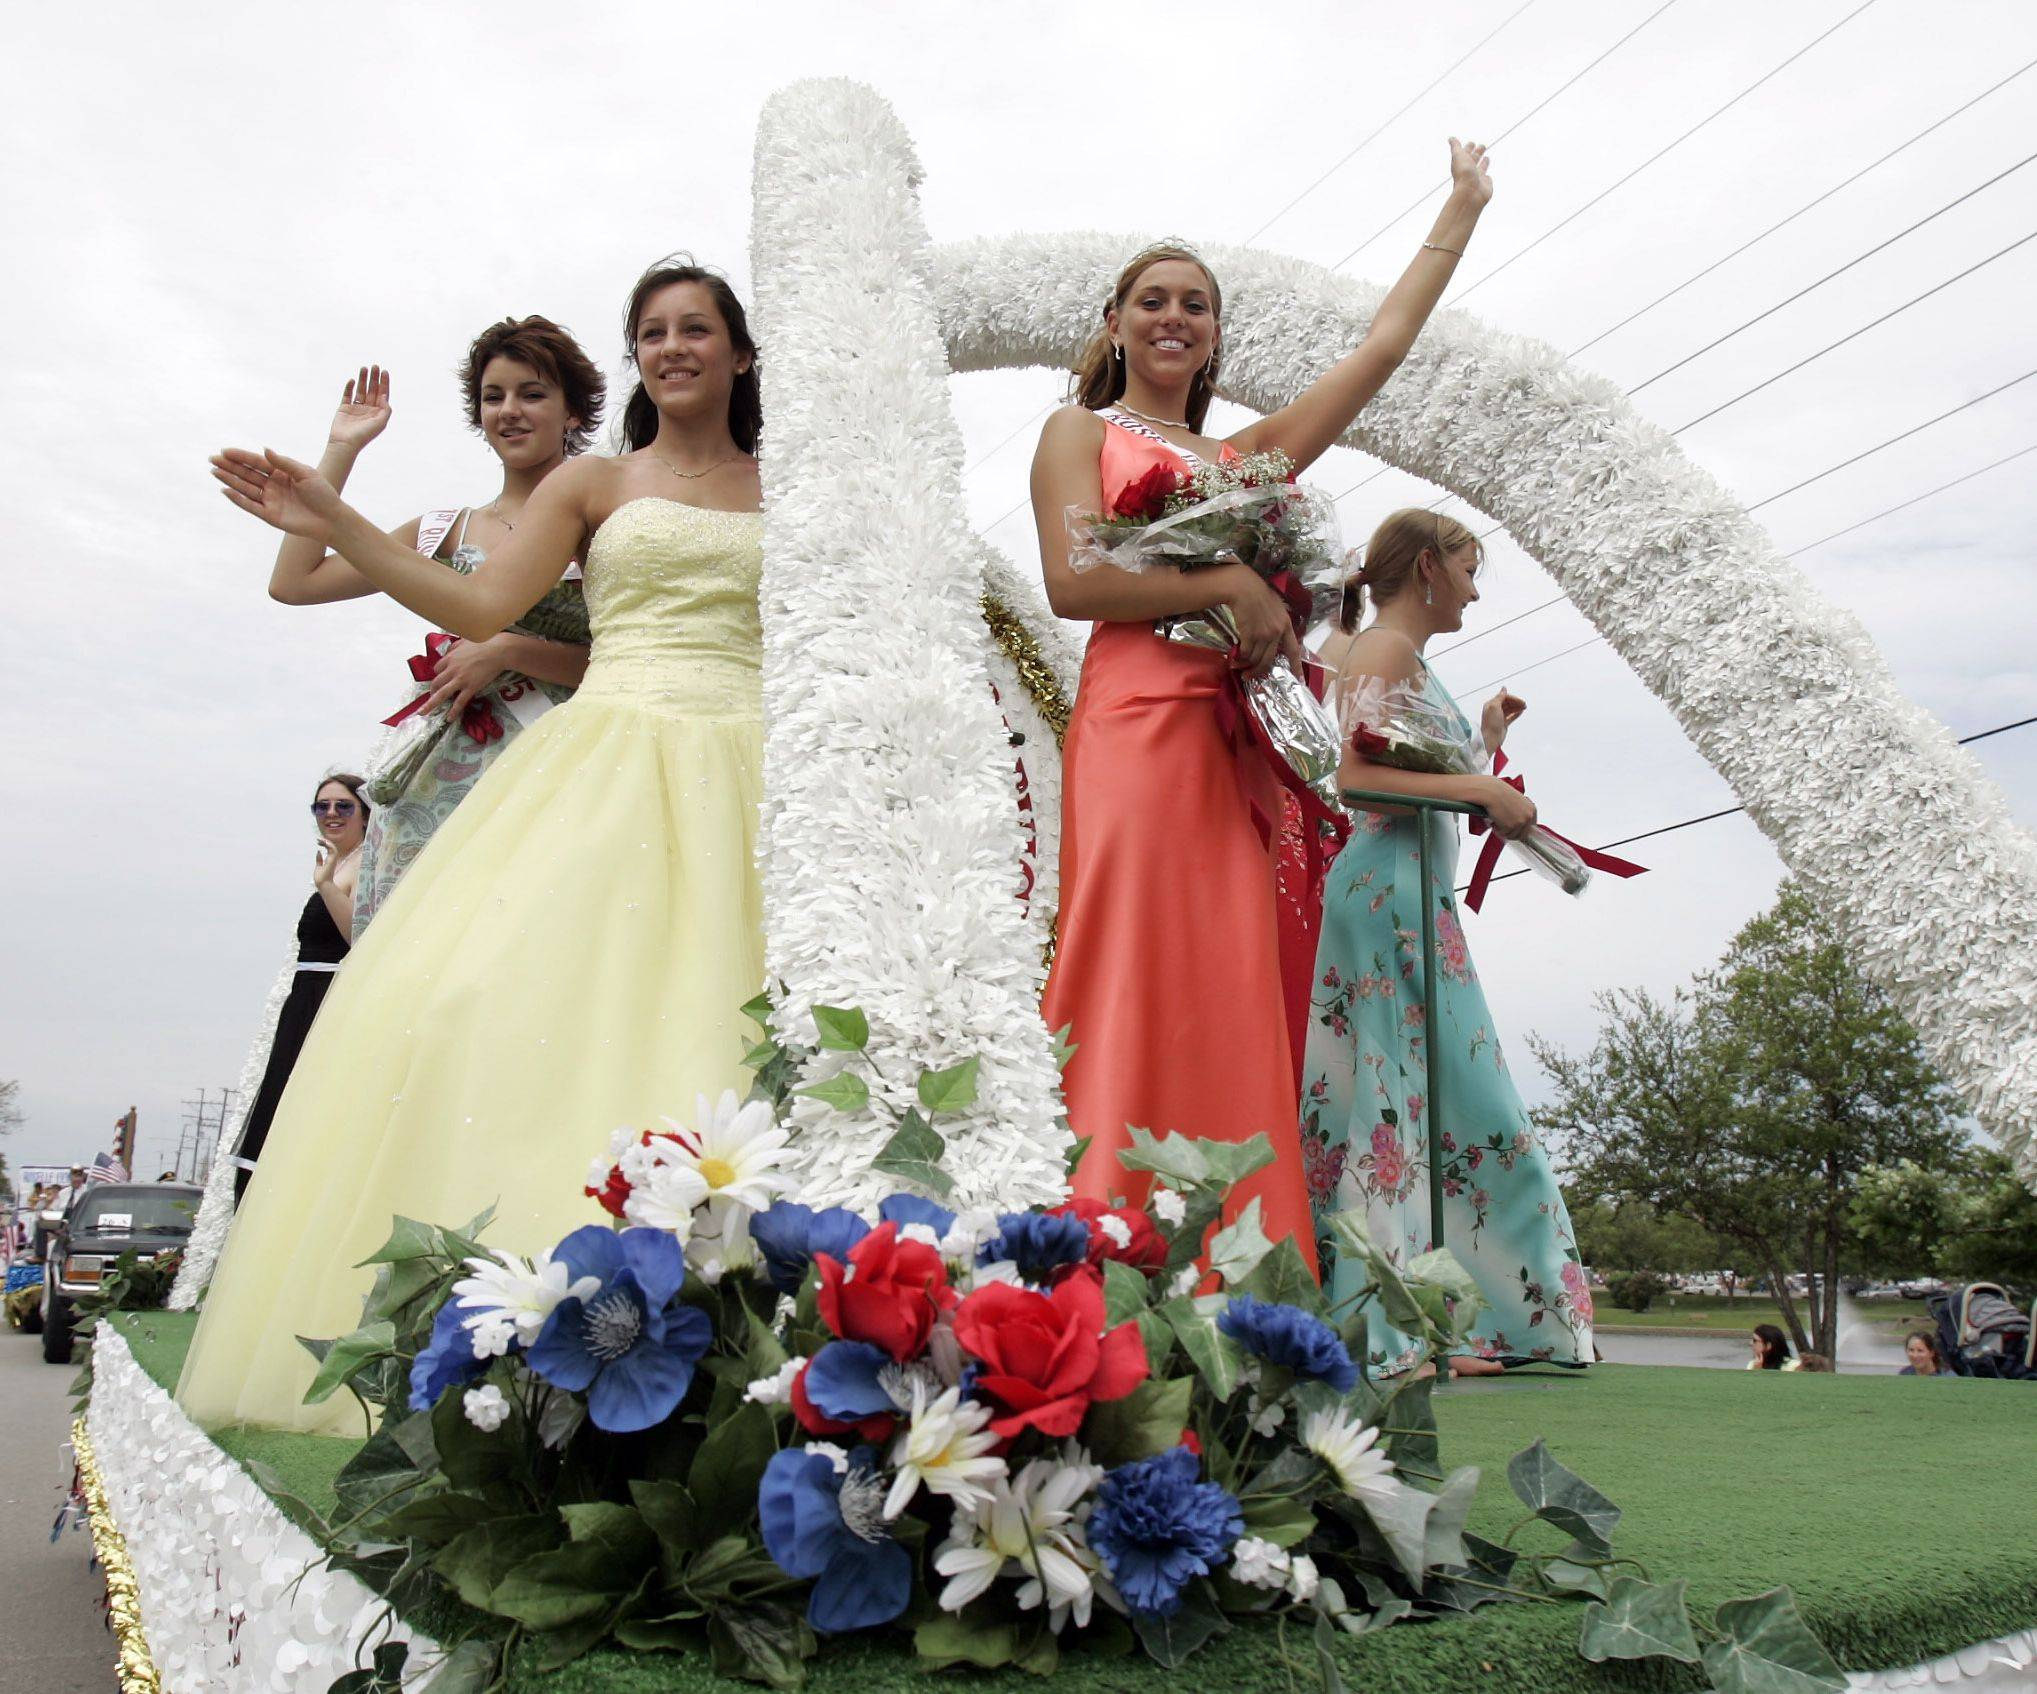 The winner of the Rose Queen pageant this week will lead a float in the annual Rose Parade Sunday, June 5.